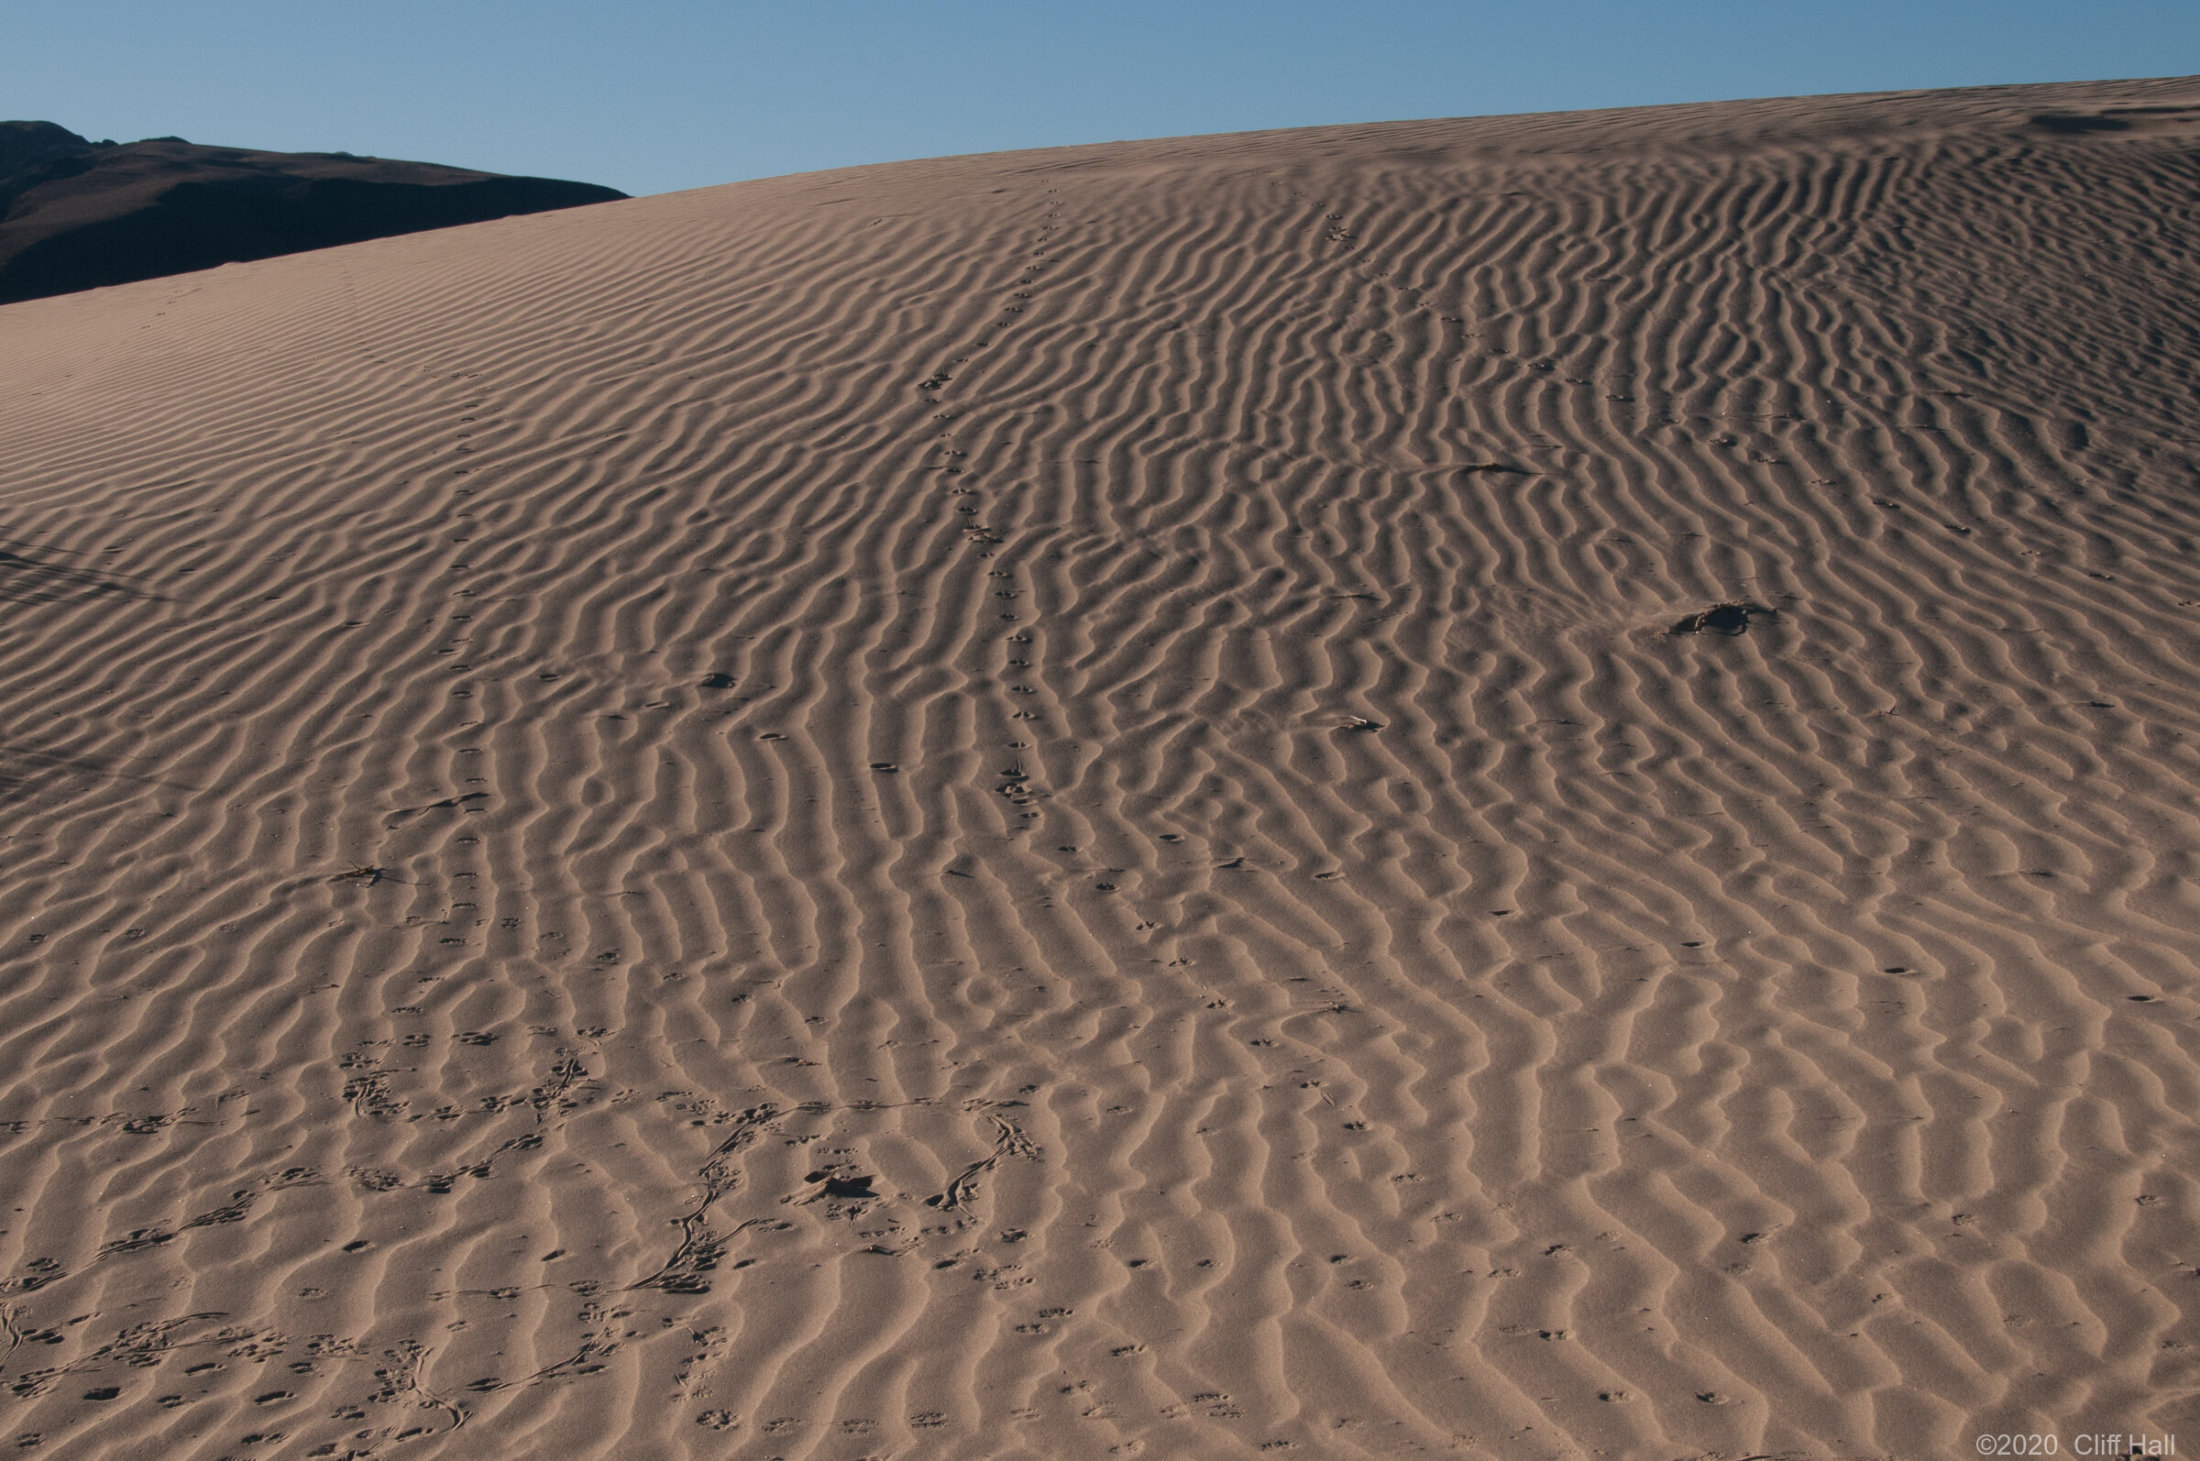 Intricate patterns on the dunes